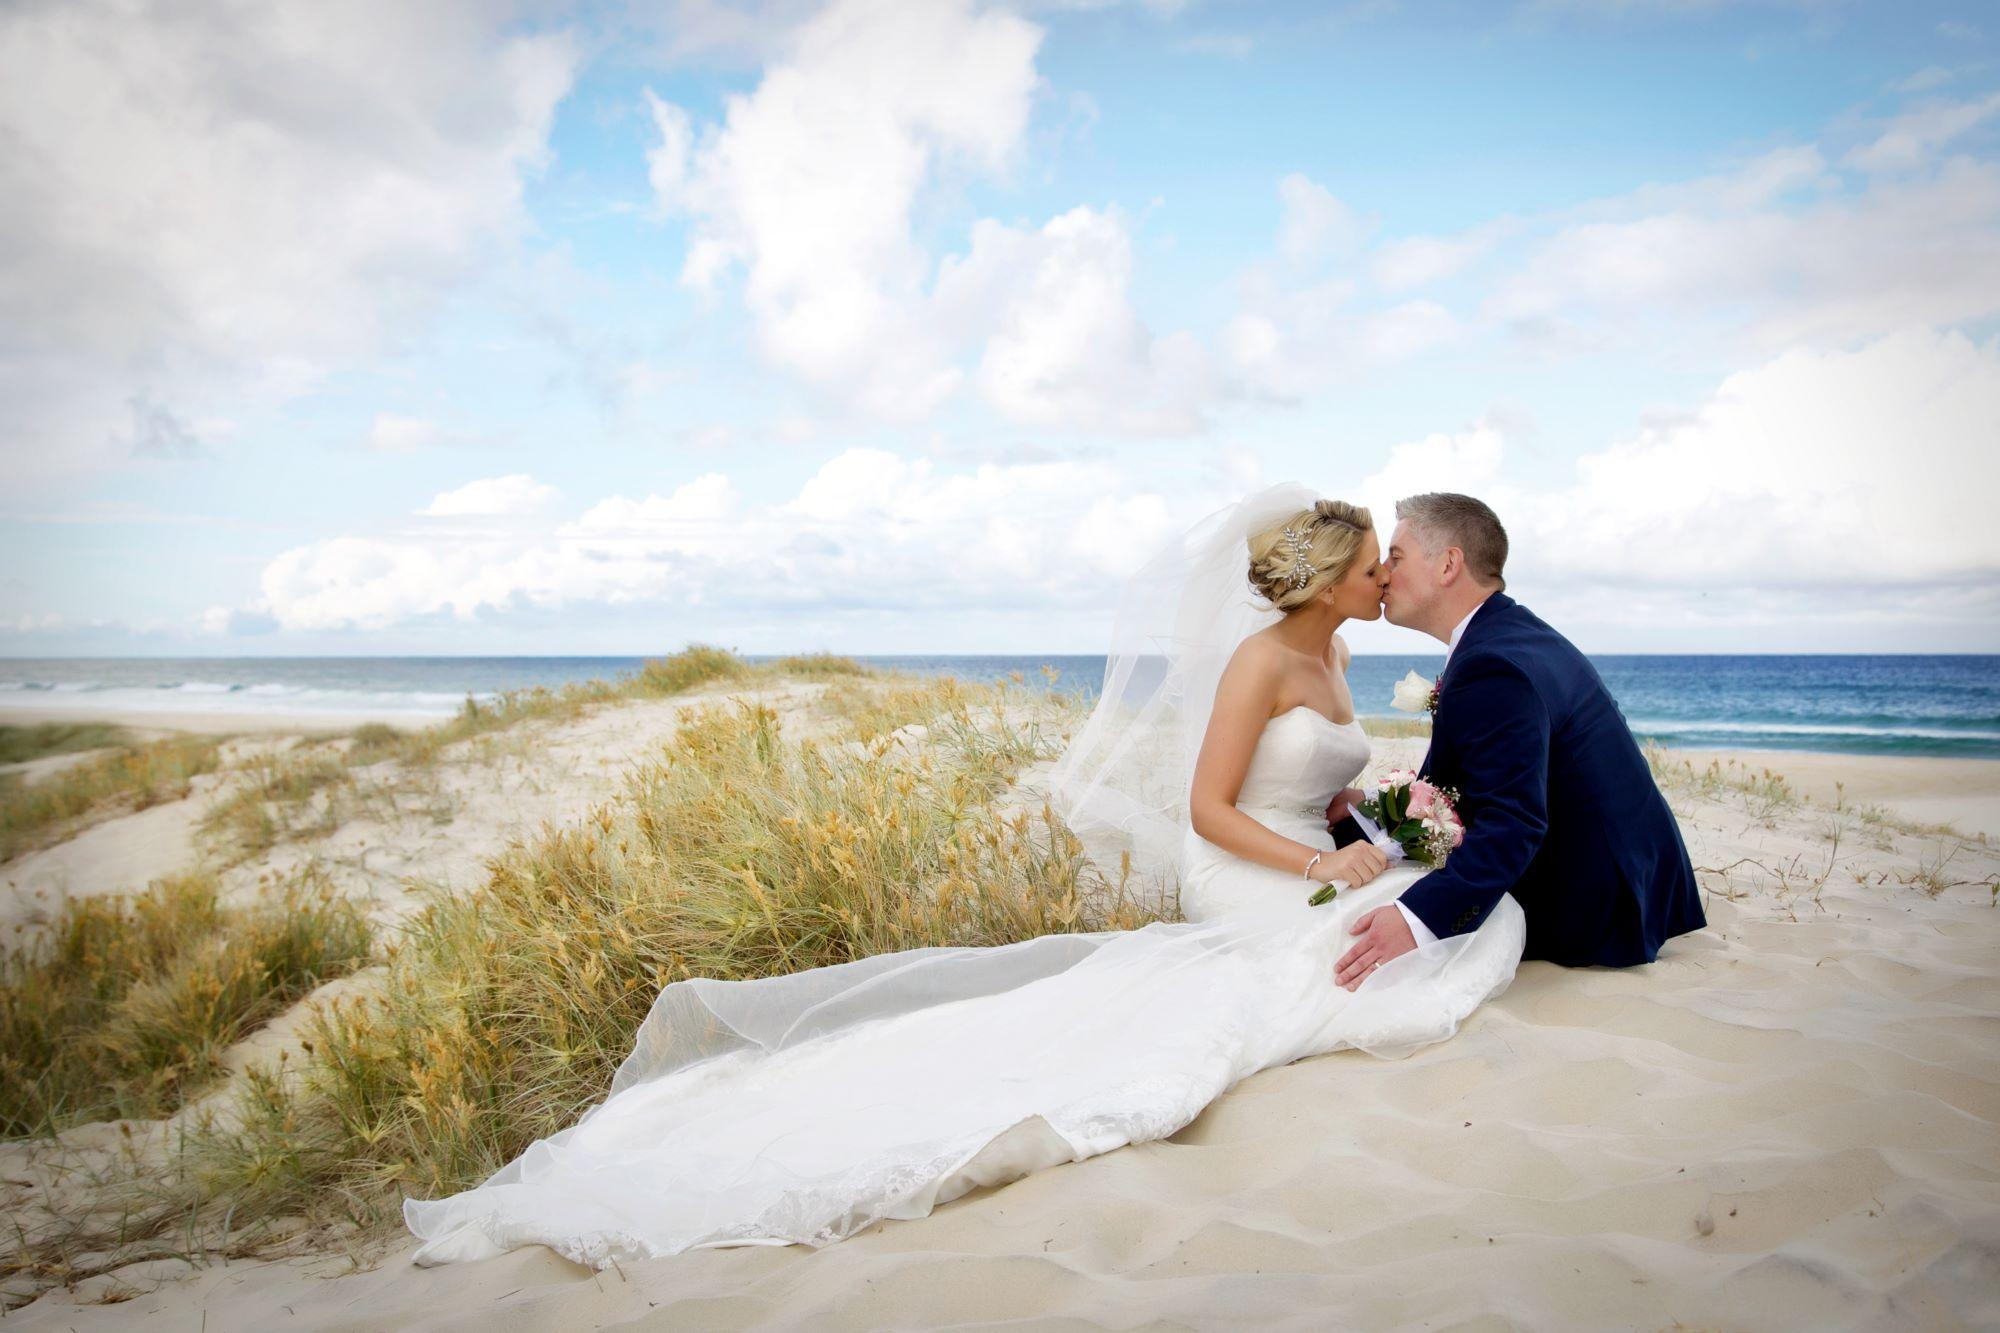 Wedding Photography Gold Coast Life Love And Light Images For Lit